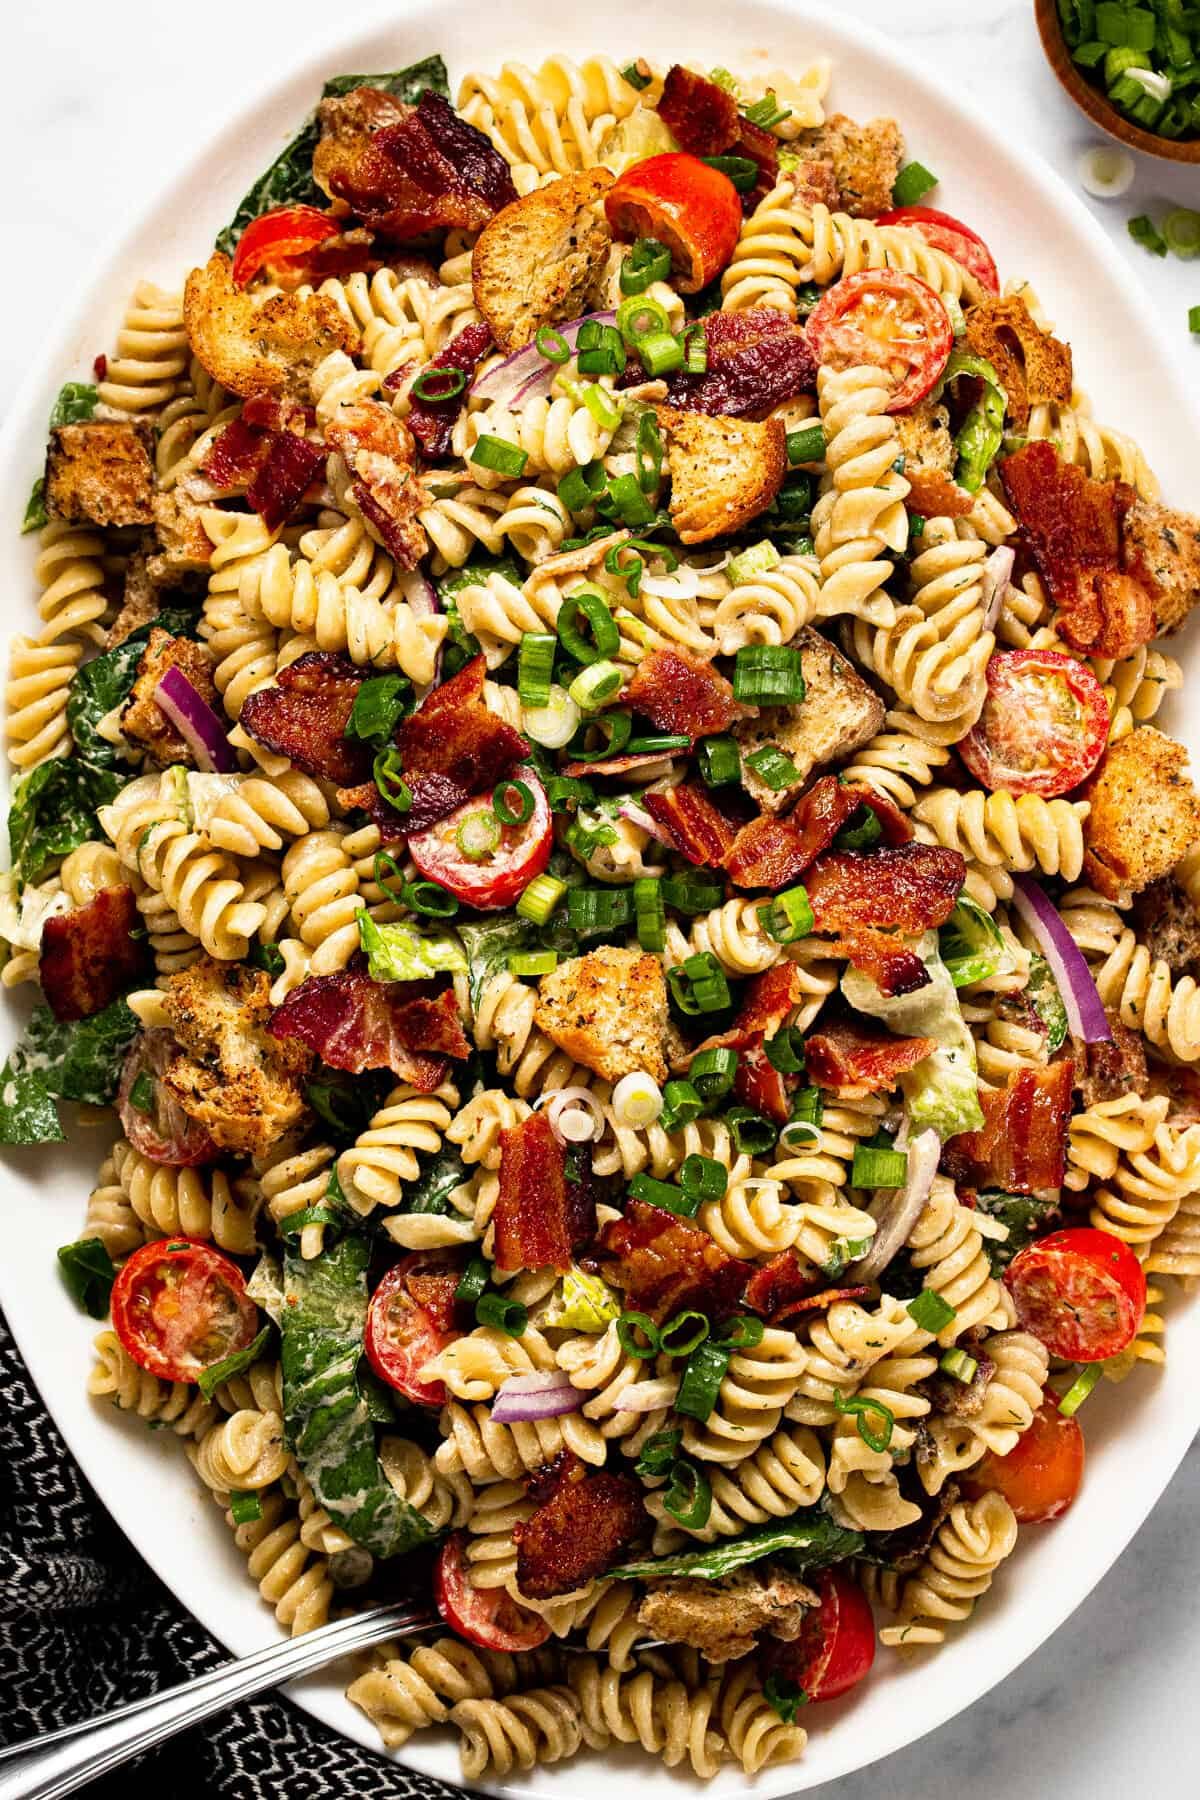 Large white platter filled with BLT pasta salad garnished with green onion